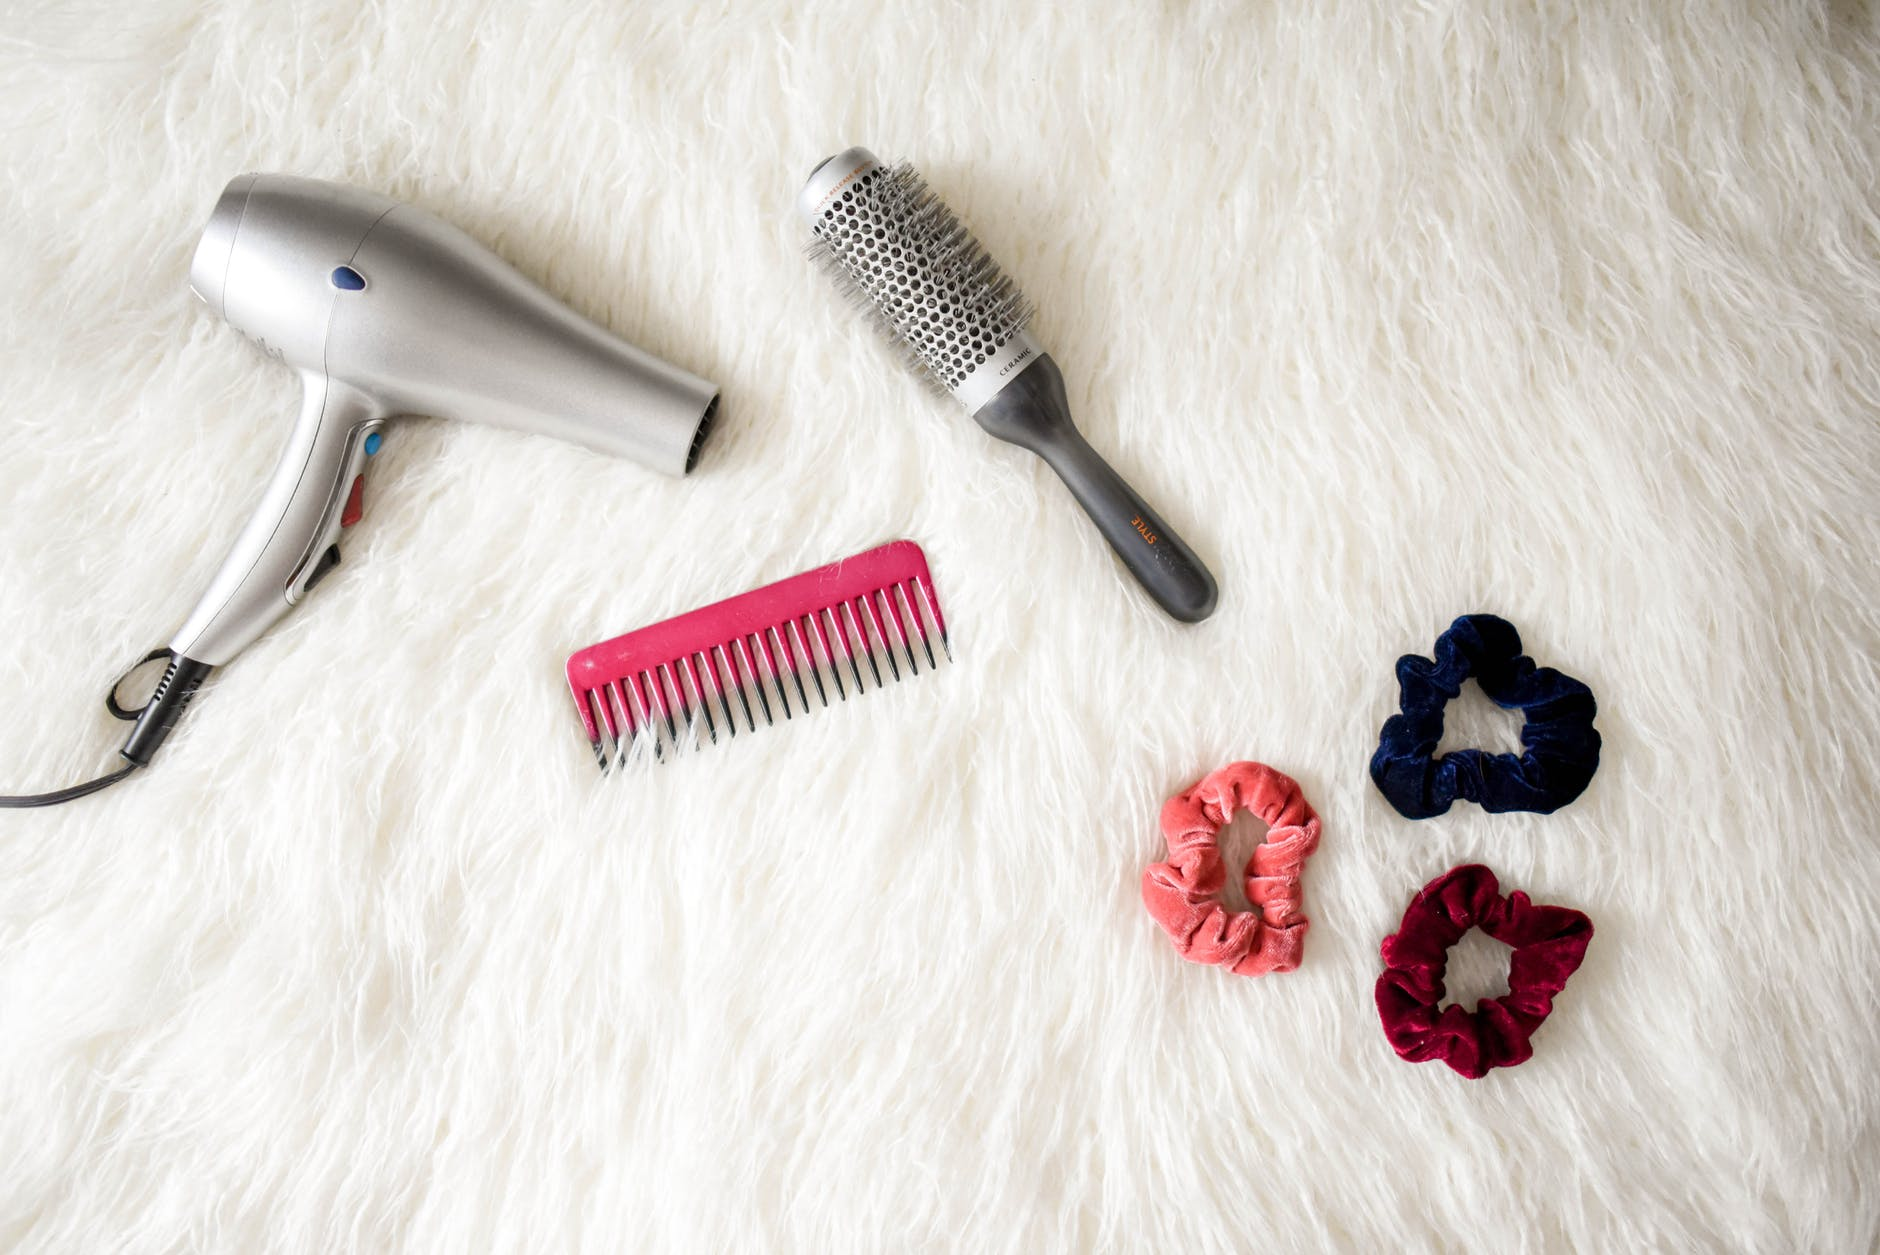 hair brush, scrunchies and other hair tools